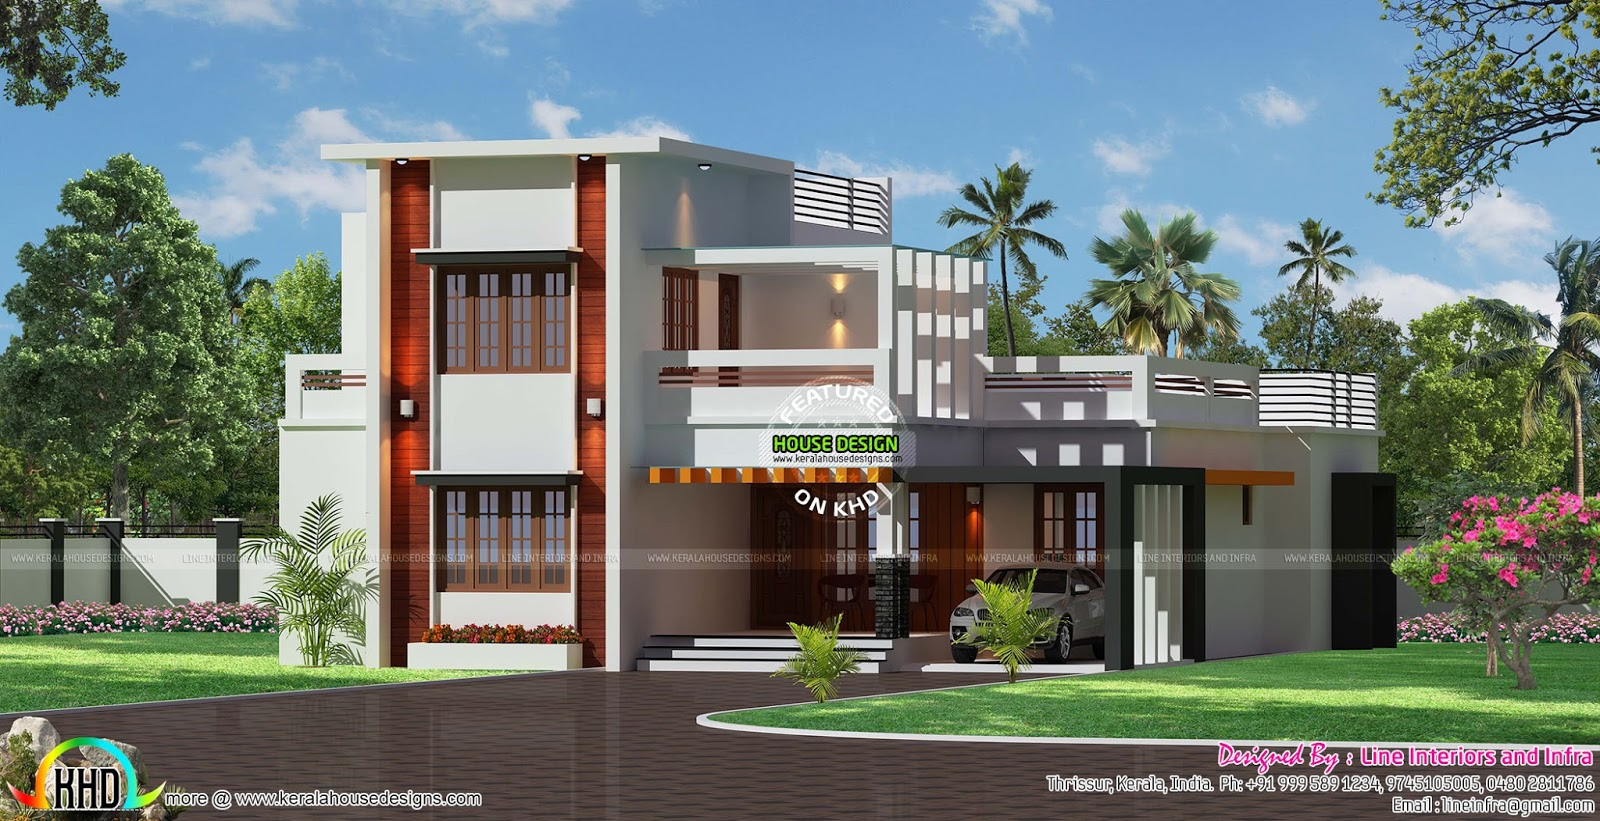 House sq ft details ground floor sq ft sq feet flat roof for Window design ground floor